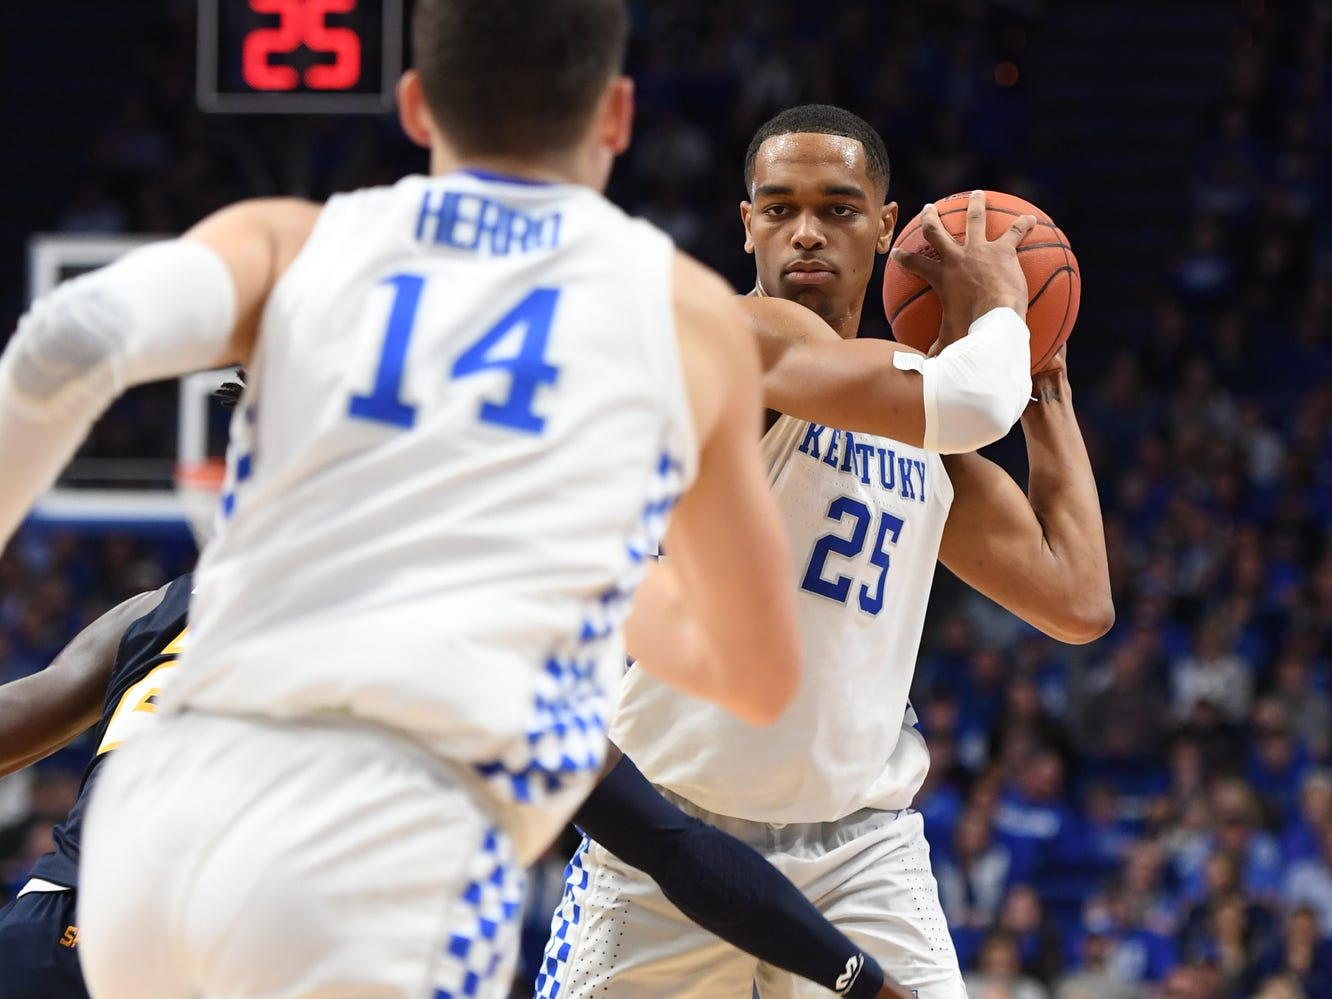 UK F PJ Washington controls the ball during the University of Kentucky men's basketball game against UNC Greensboro at Rupp Arena in Lexington, Kentucky on Saturday, December 1, 2018.